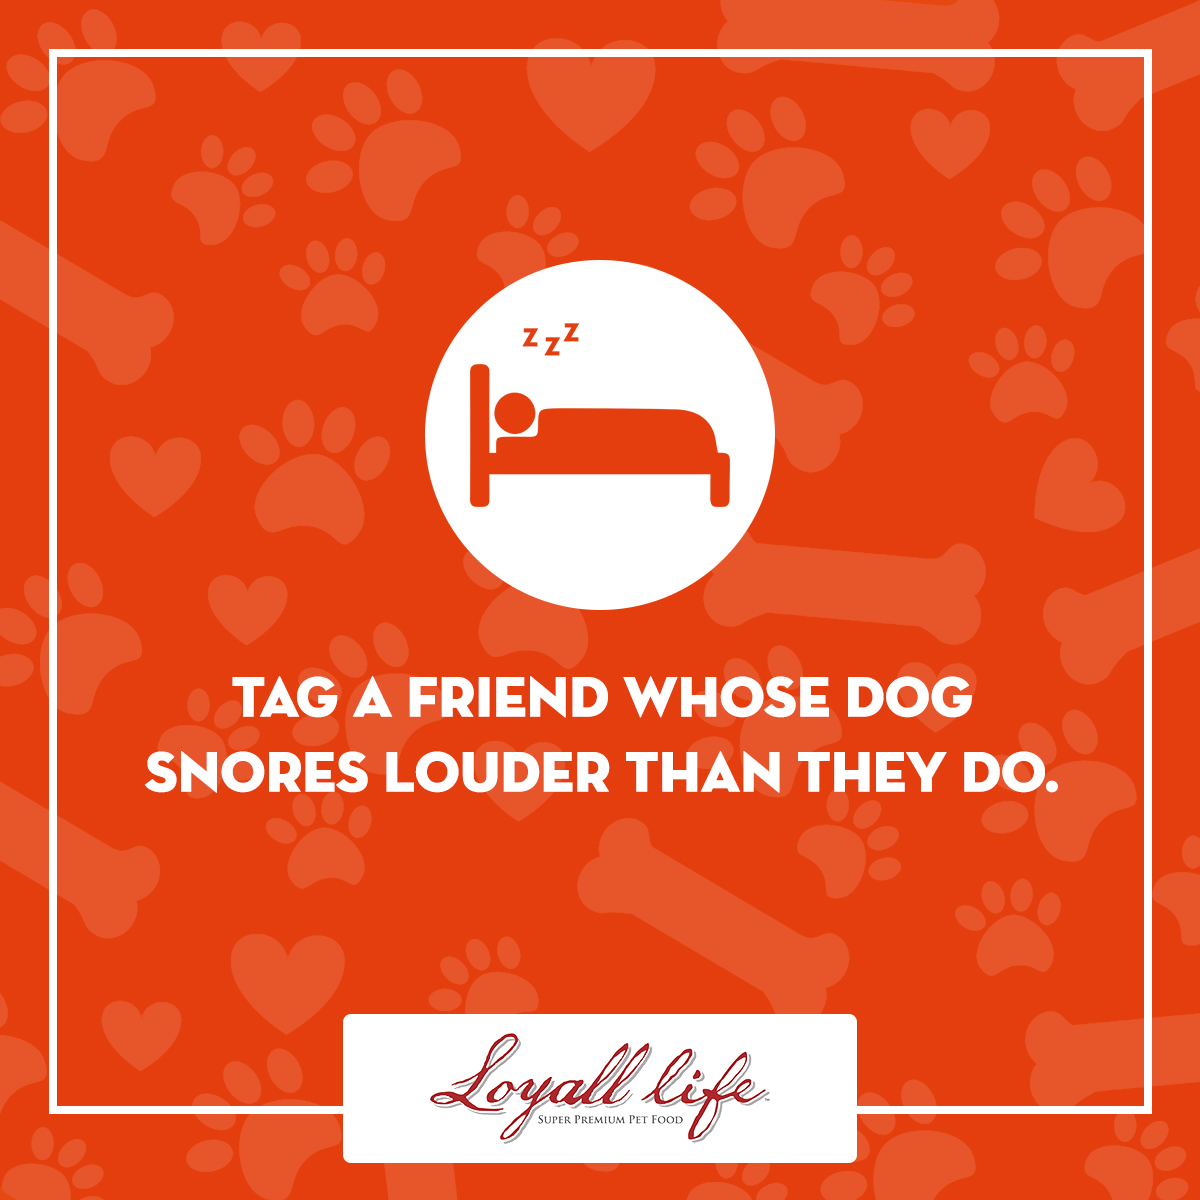 Tag a friend - dog snores.jpg